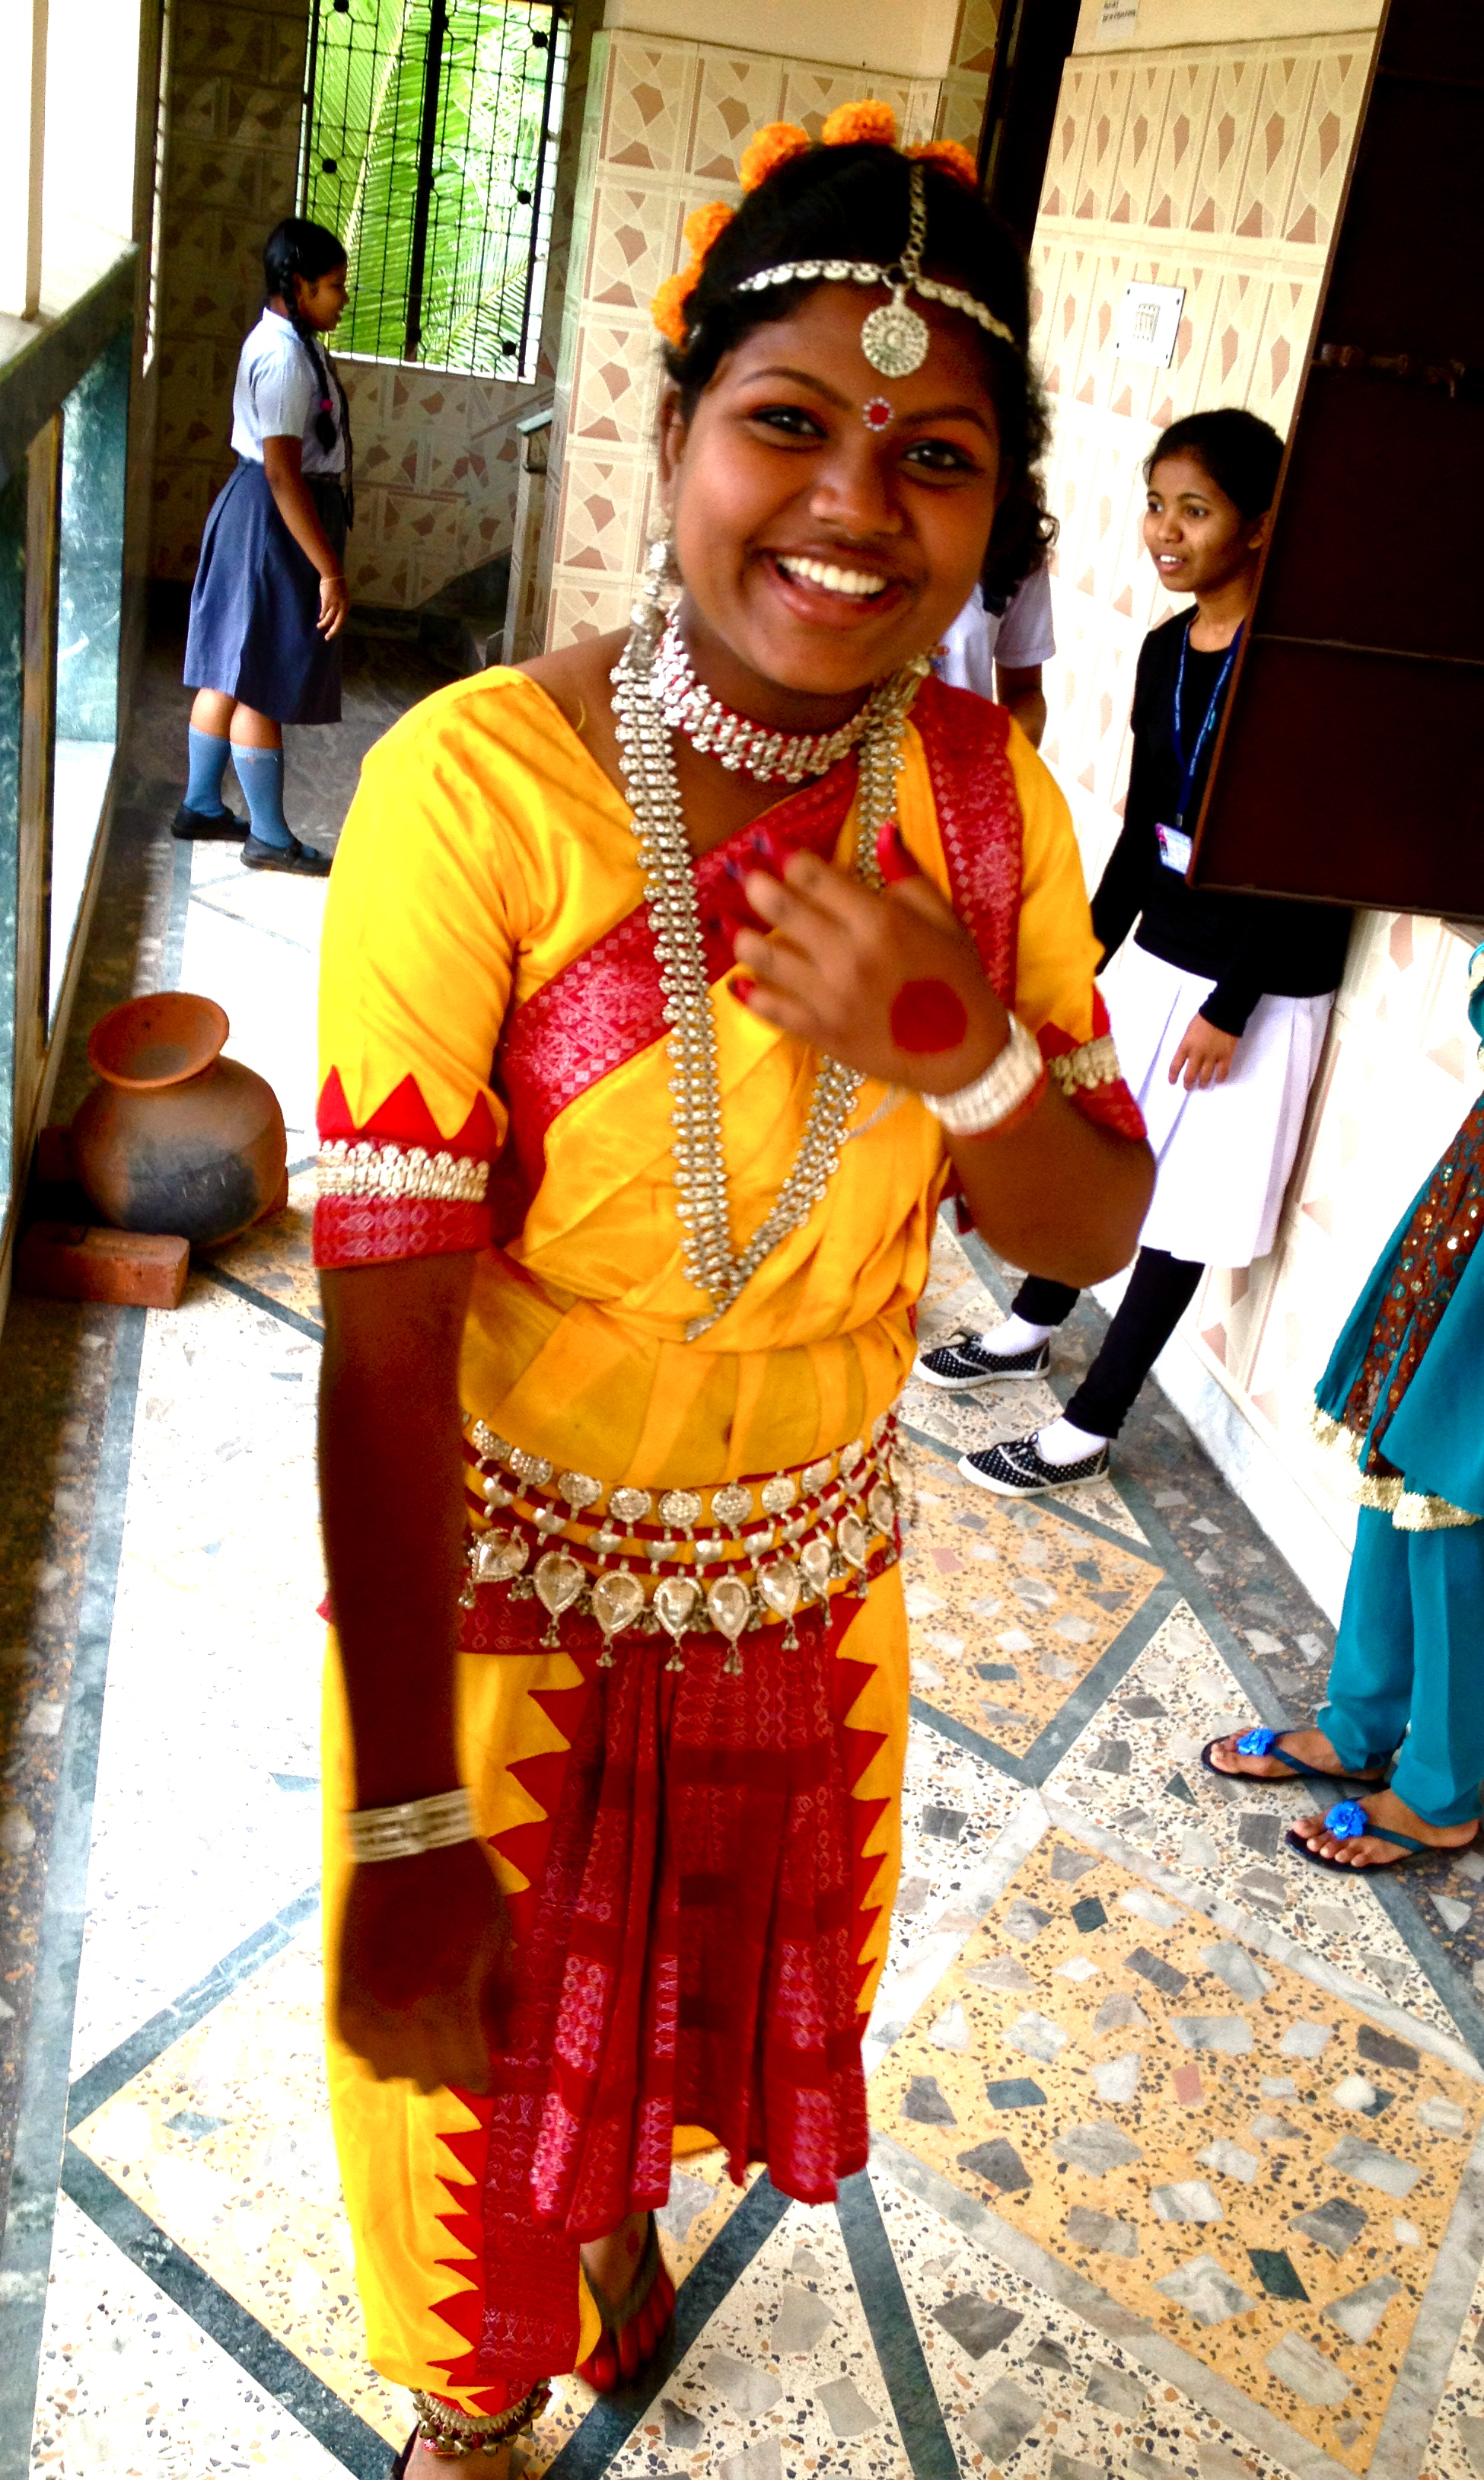 A traditional Hindi costume--I love all the bells that jingle as she moves!